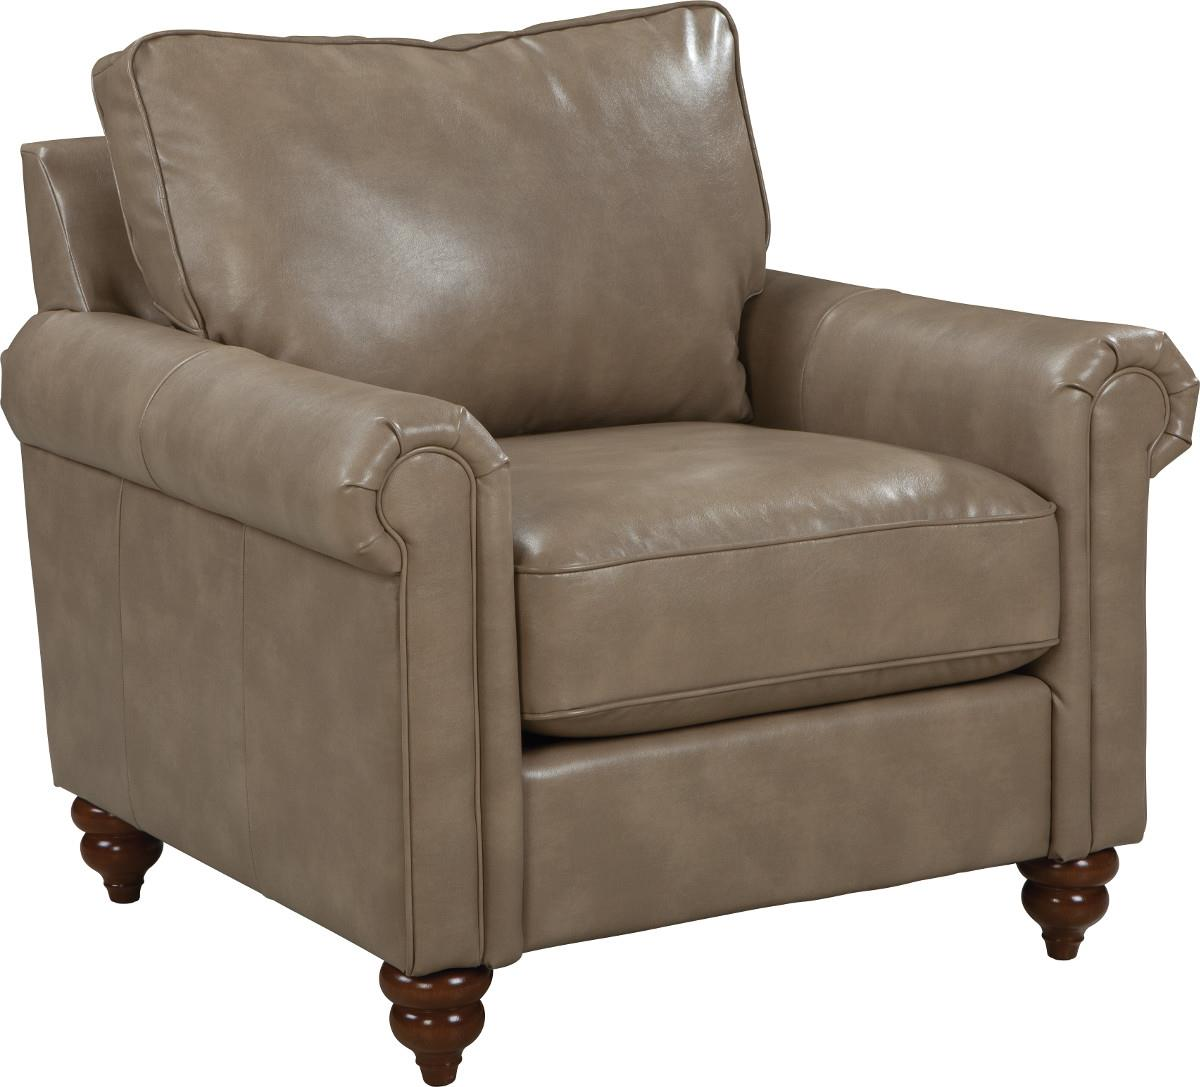 La Z Boy Leighton Traditional Rolled Arm Loveseat With